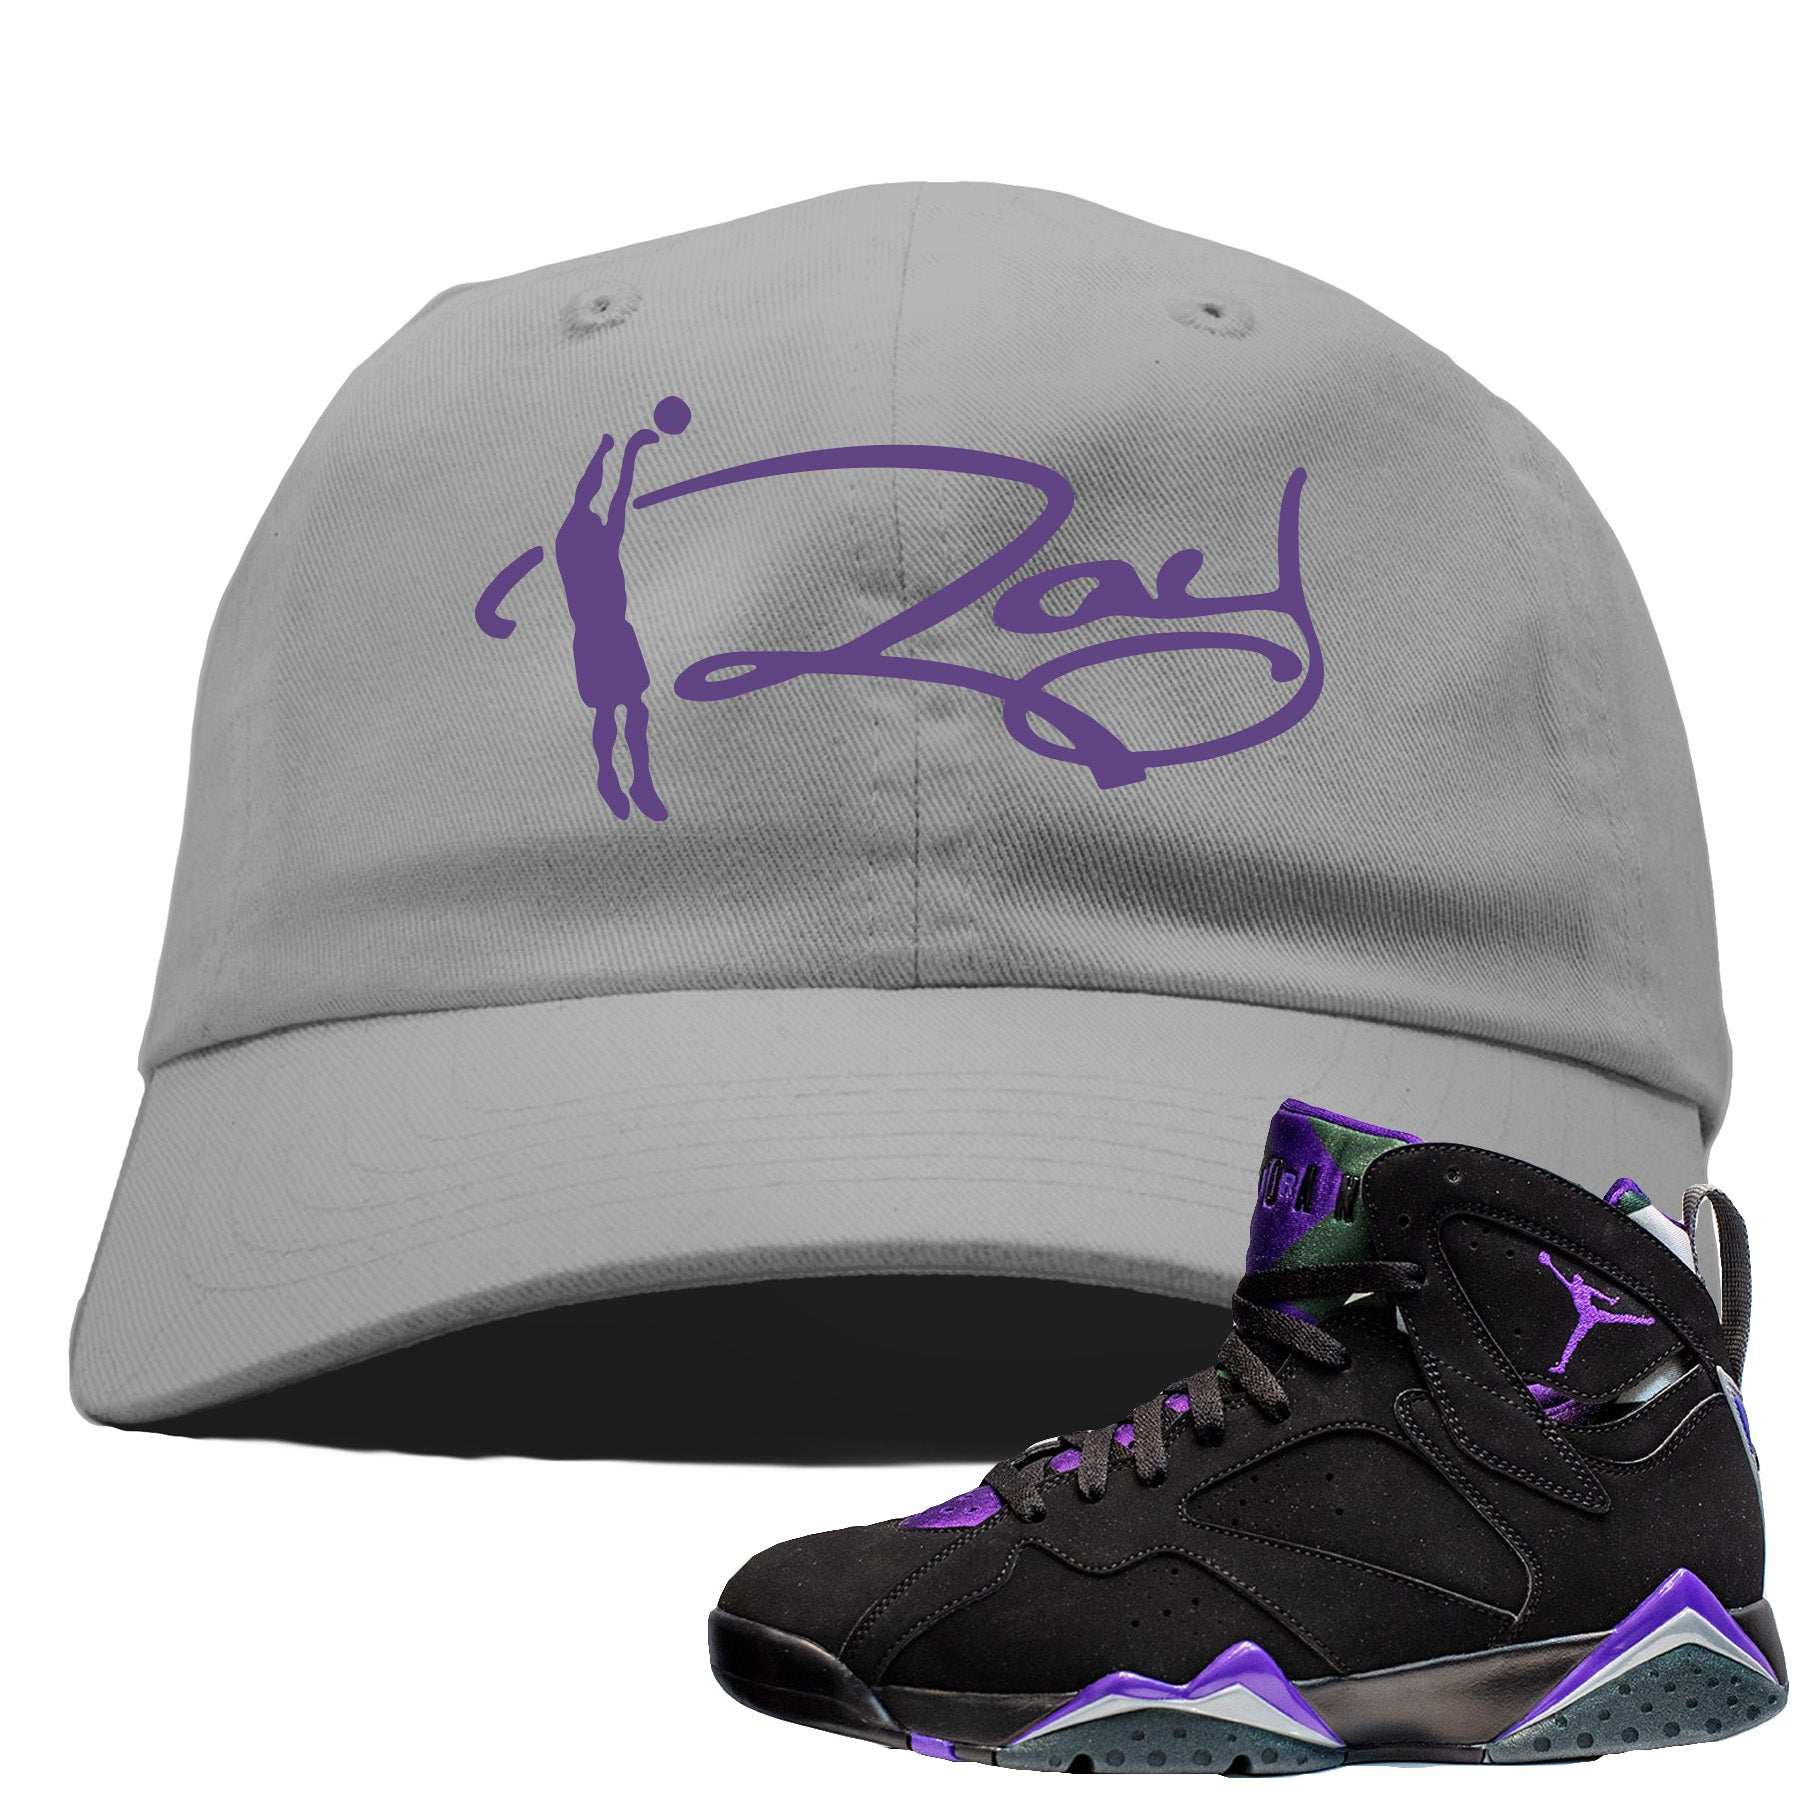 separation shoes bb333 f973a Air Jordan 7 Ray Allen Sneaker Match Ray Signature Gray Dad Hat